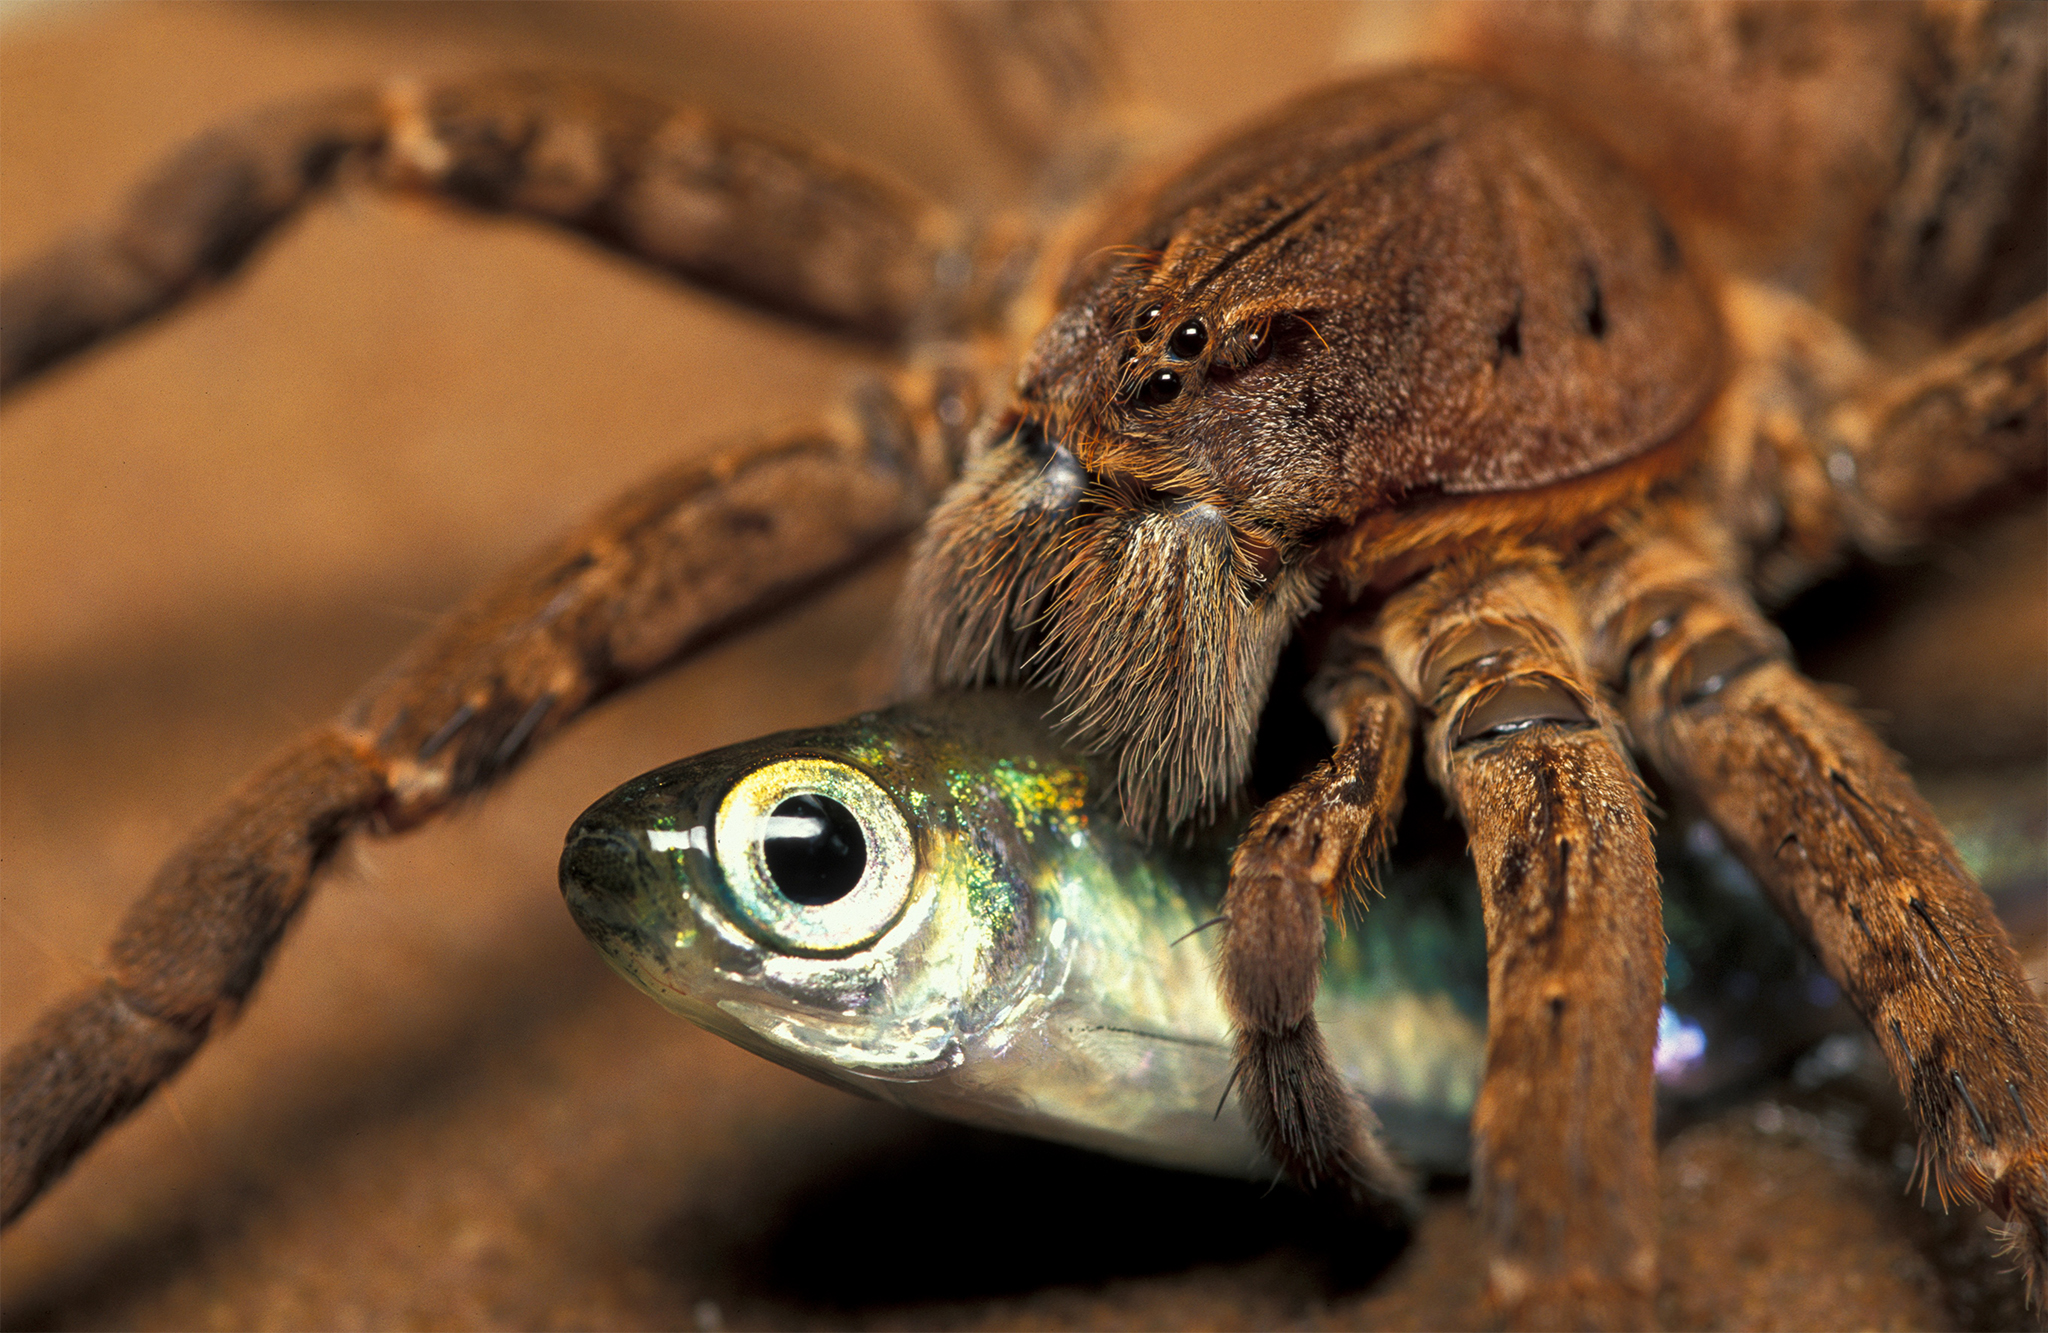 Fishing Spider {Ancylometes bogotensis} with fish prey, French Guyana --- Image by © Ingo Arndt/Nature Picture Library/Corbis